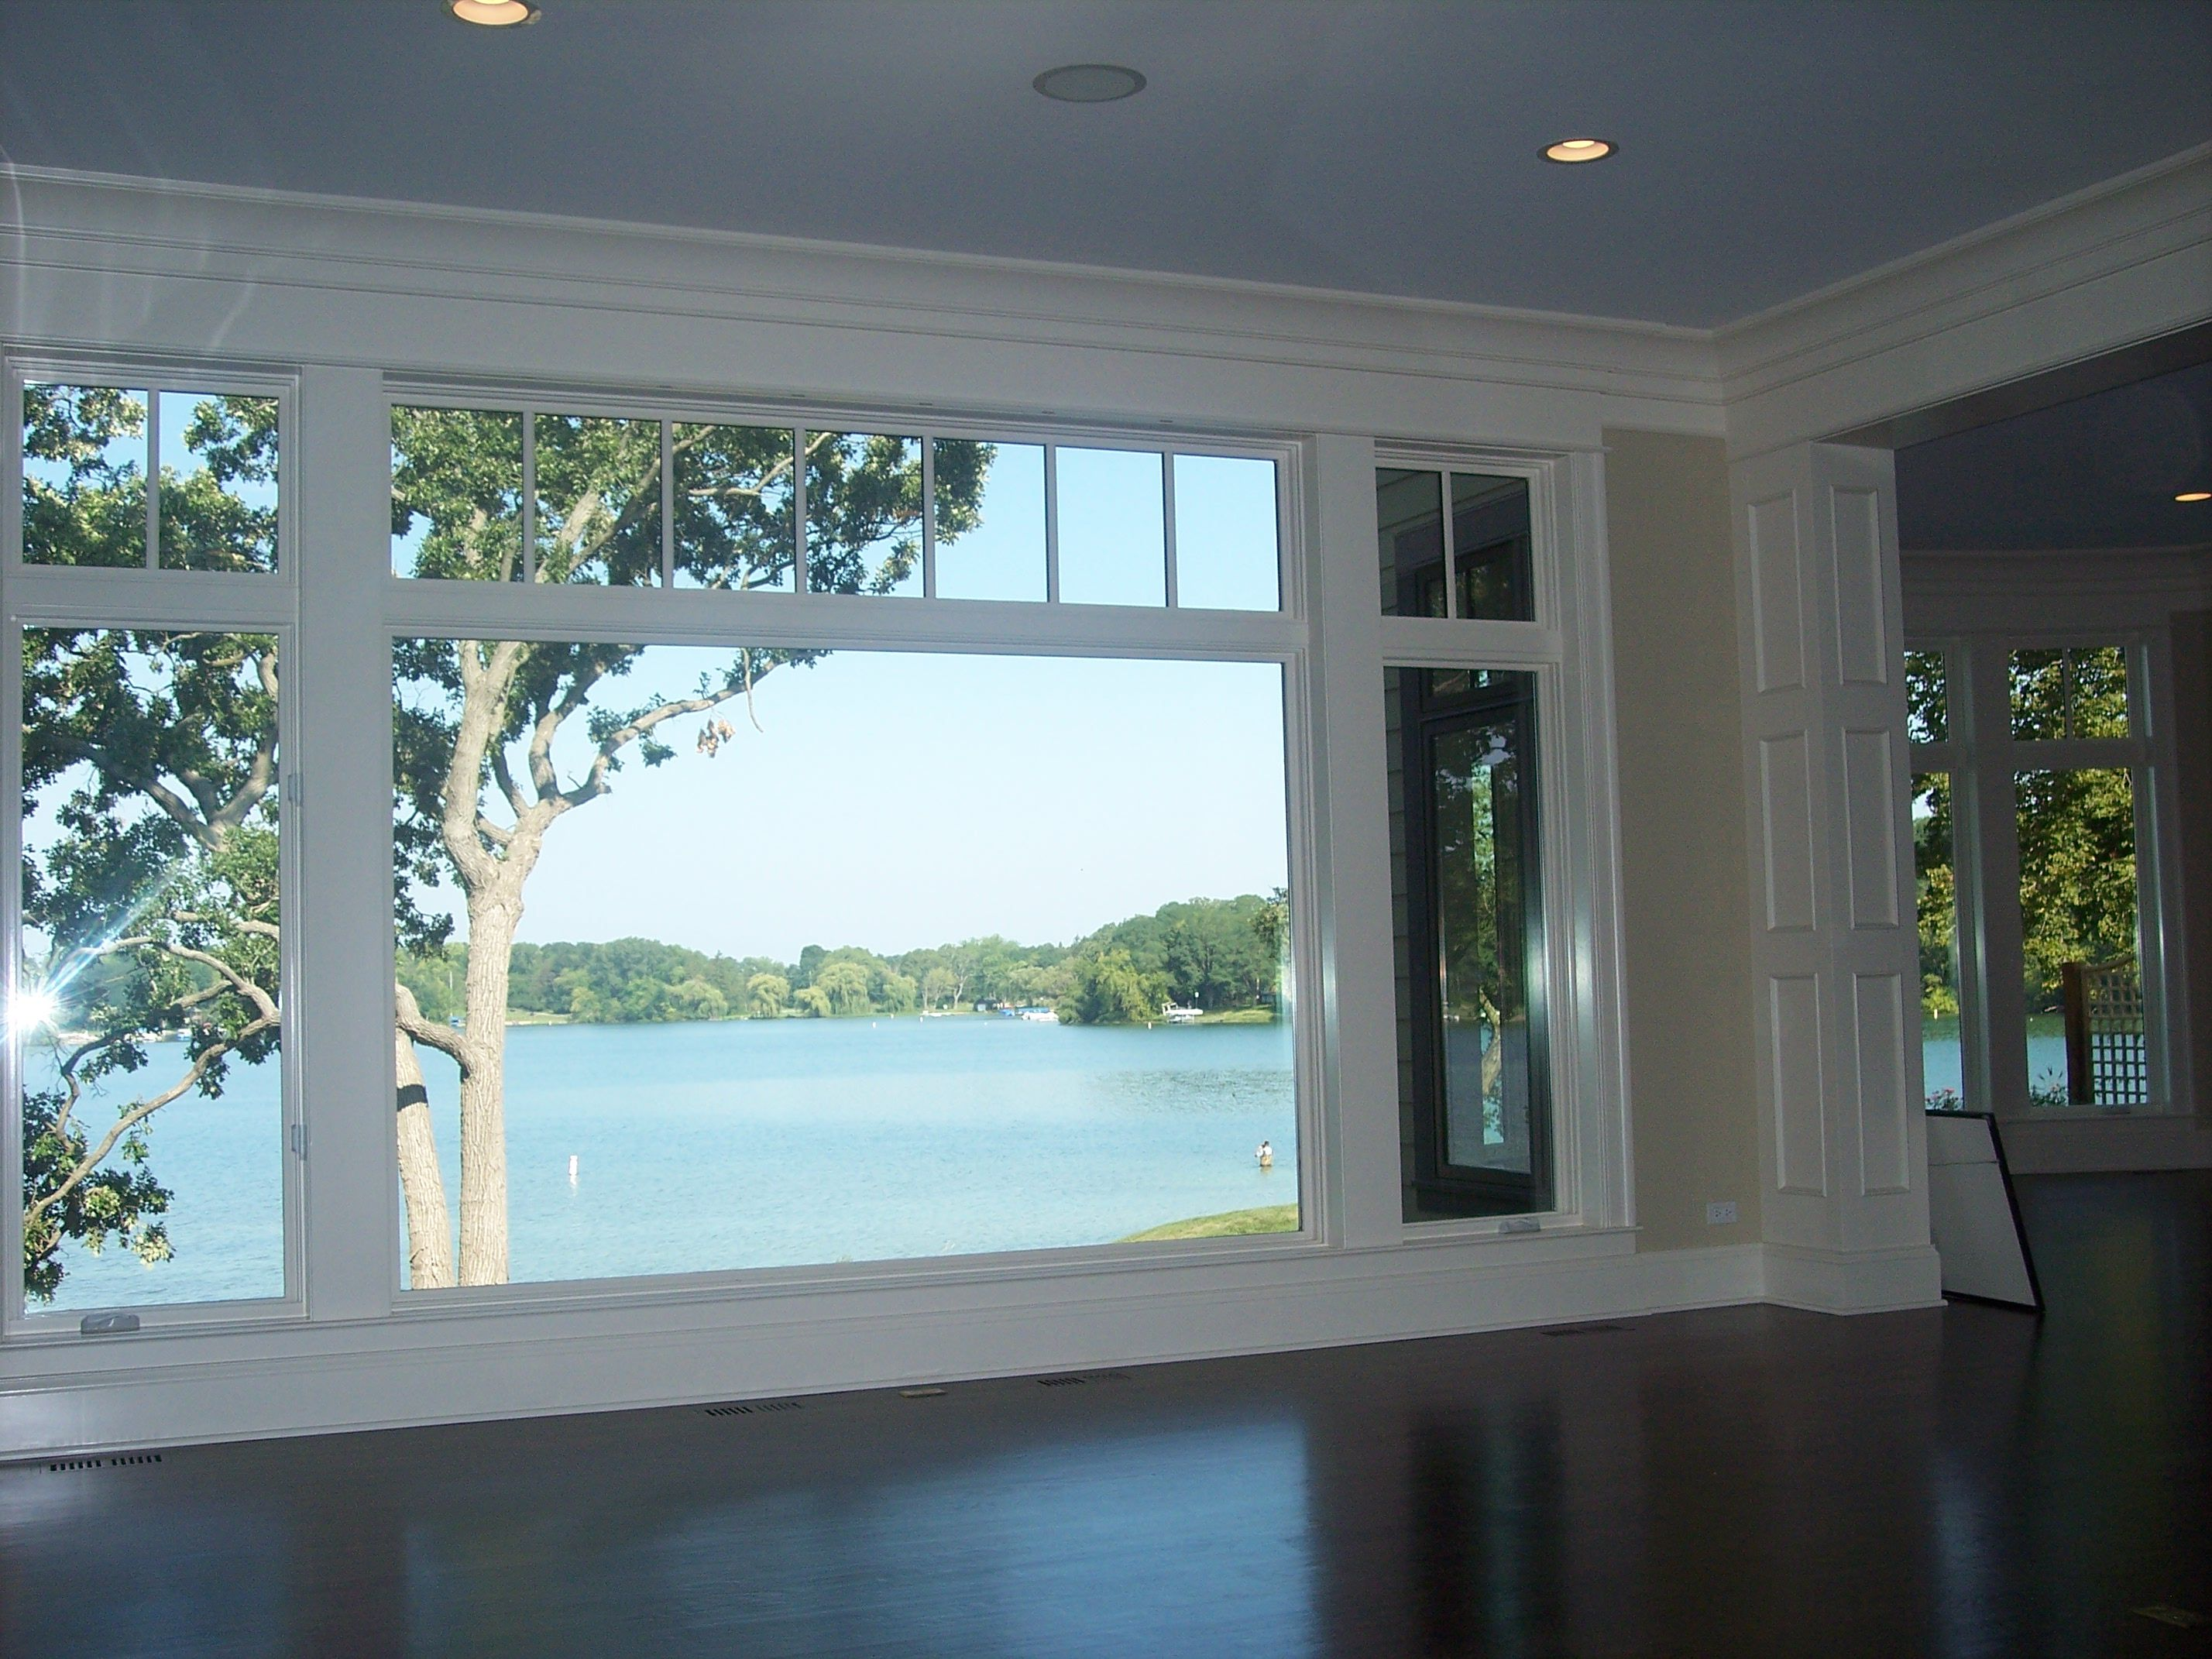 Living Room Lake View From Picture Window In Genoa City Wi Luxury